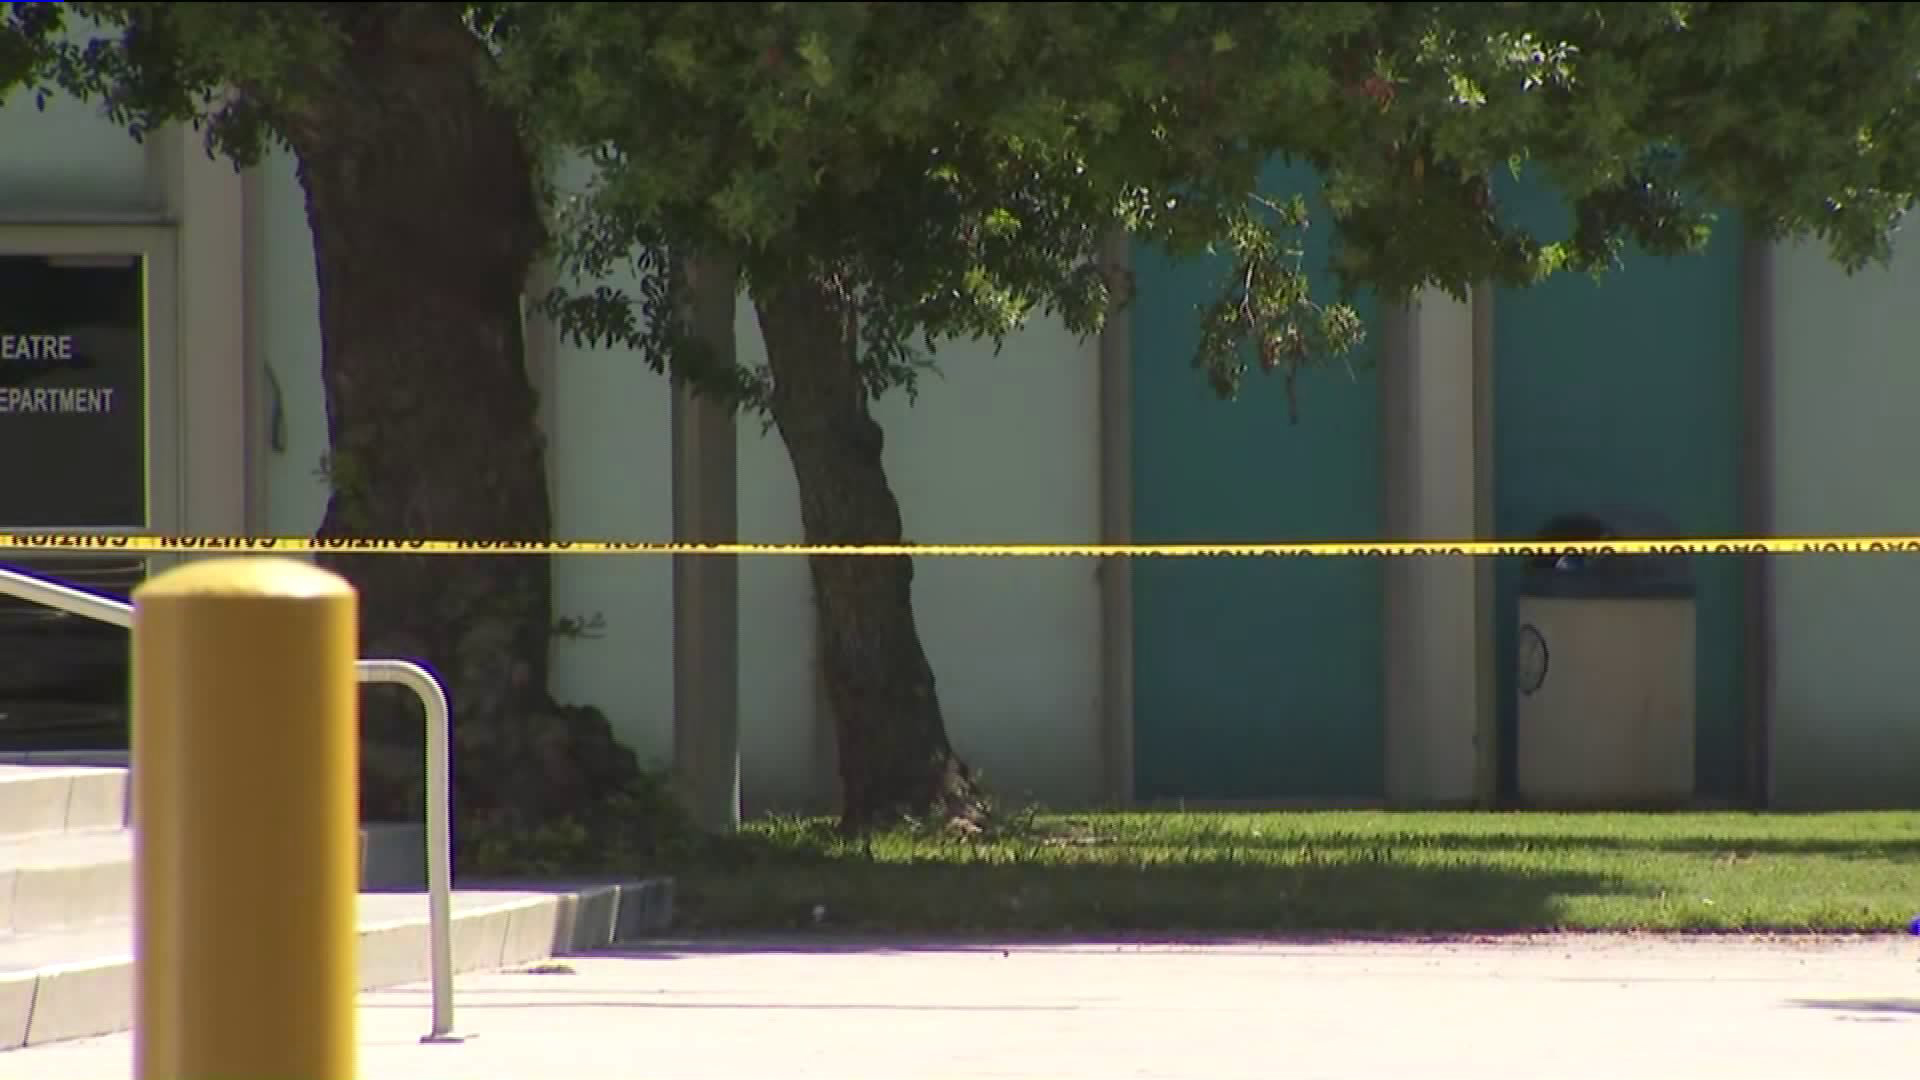 Crime scene tape blocked off a building at Cerritos College on Sept. 3, 2019. (Credit: KTLA)